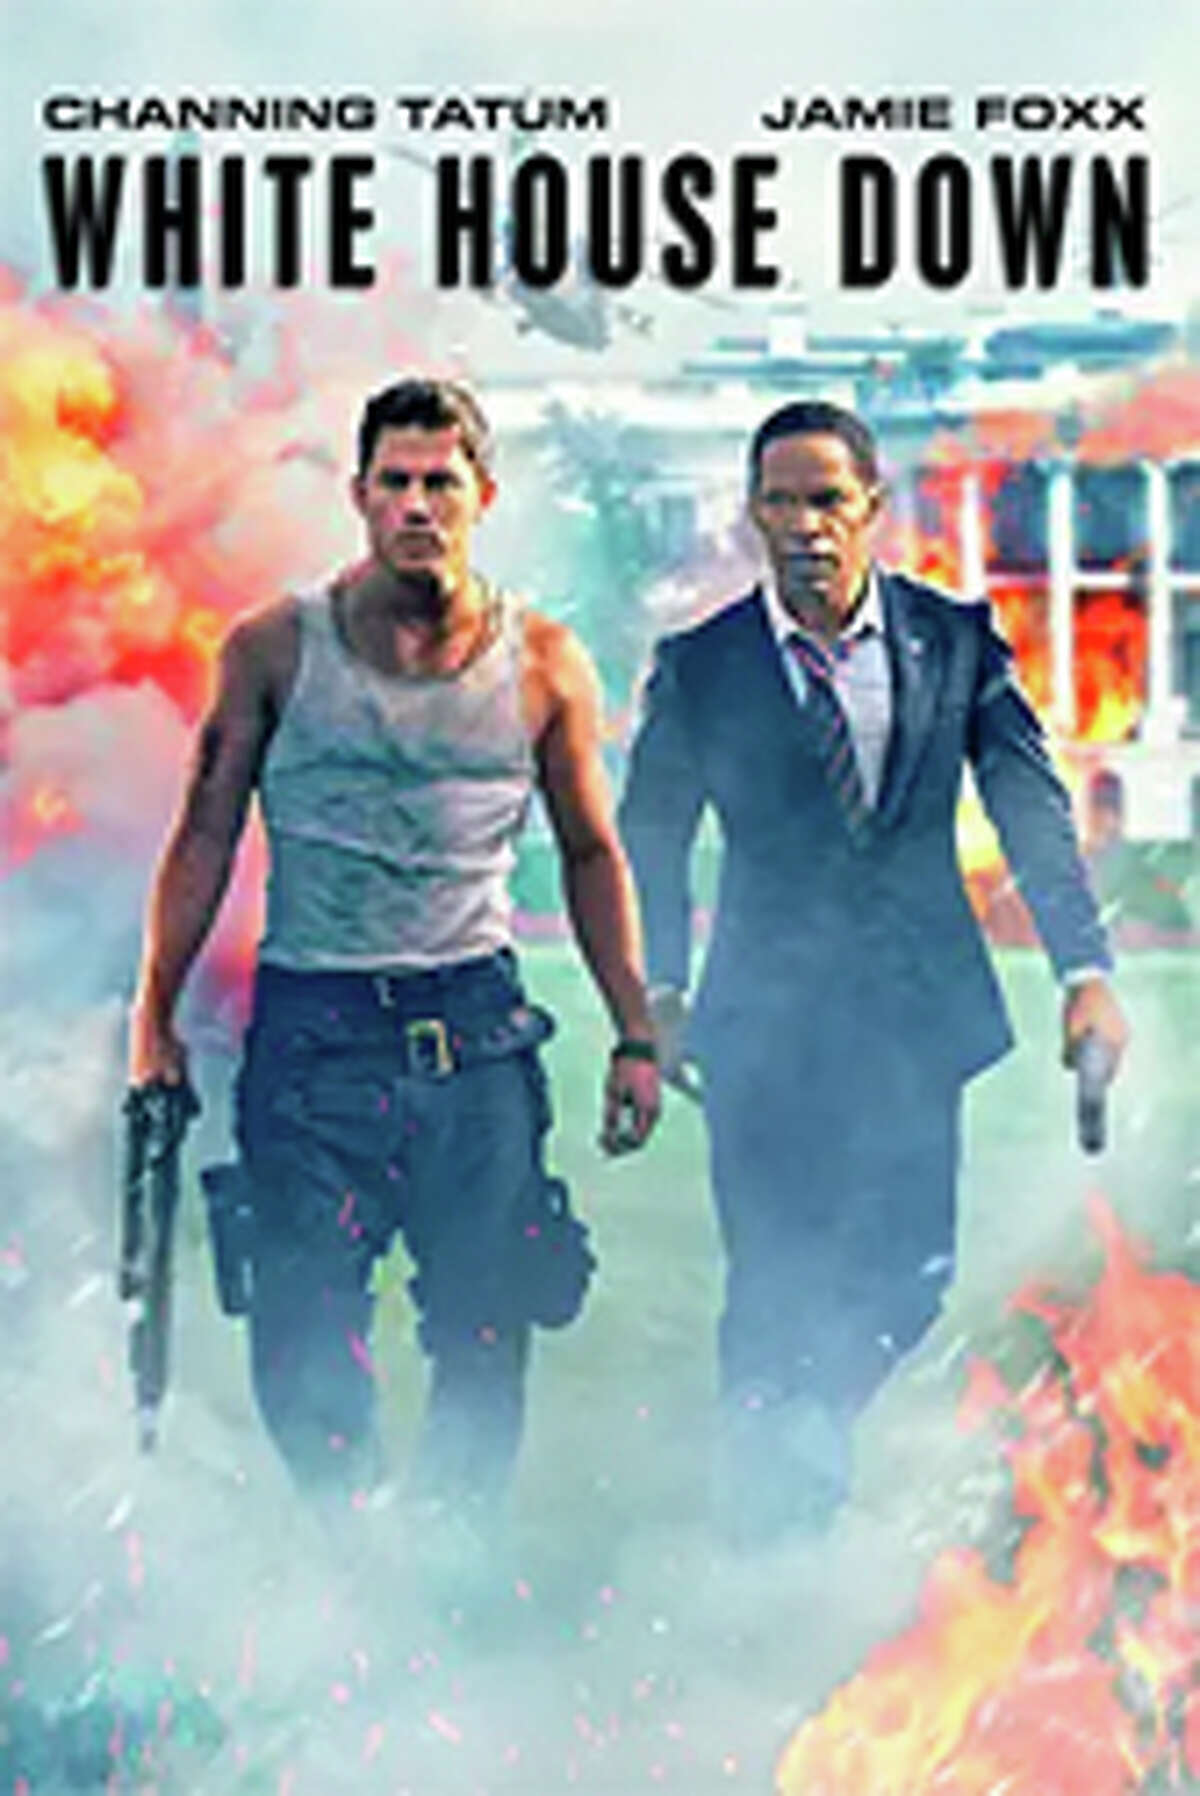 """White House DownWhere to stream it: Amazon (Rent it for $3.99)I'm going to tell you right now: There's gonna be a surprising amount of Roland Emmerich on this list that, in early drafts, was called """"A List of Dangerously American Movies."""" (Emmerich is German). """"White House Down"""" is a movie about the White House being taken over by terrorists, and it lost at the box office to the hilariously inferior """"Olympus Has Fallen."""" Sure, the latter has a lot of priceless shots where Gerard Butler stabs dudes, but """"White House"""" makes up for it by having a likeable lead, a coherent plot, and a script that seems like it was actually written by a grown-up (or at least revised by one). """"White House Down"""" knows it's silly, but it also knows you know, so it's fine with letting everyone have a good time. Channing Tatum, Jamie Foxx, James Woods and Maggie Gyllenhaal lead the cast."""